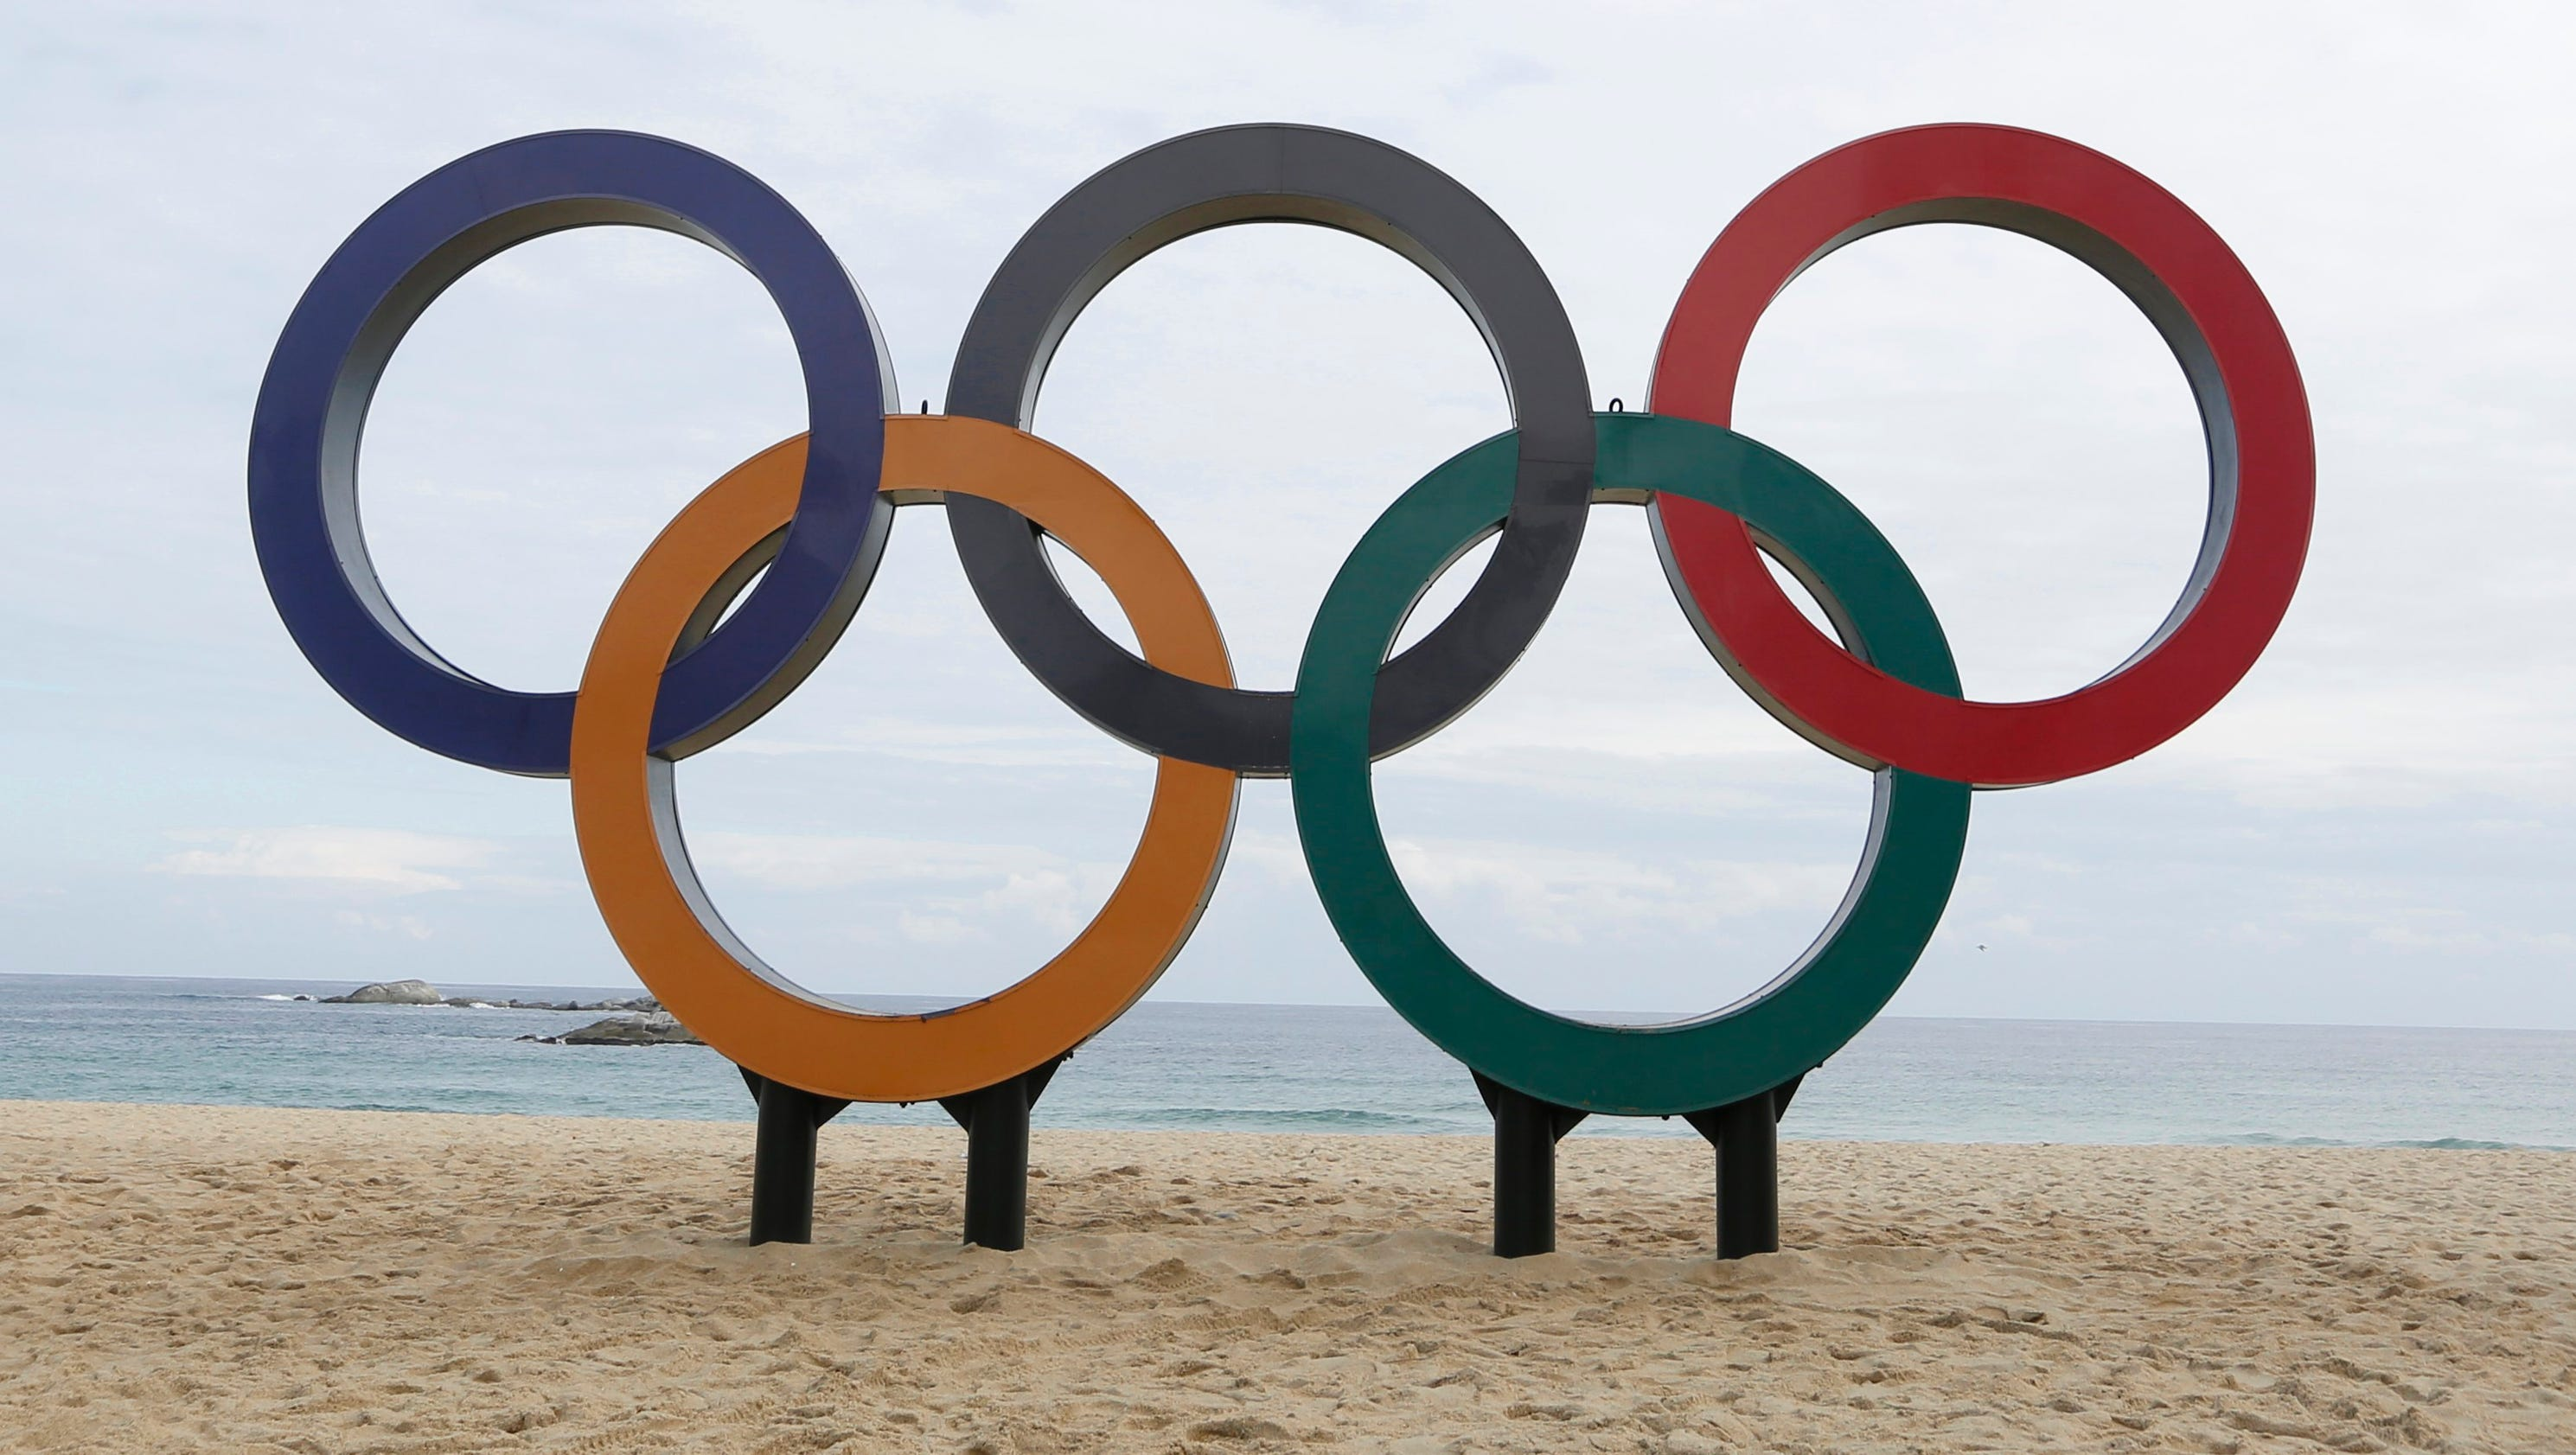 Olympics ioc set to decide on russias participation in december buycottarizona Image collections